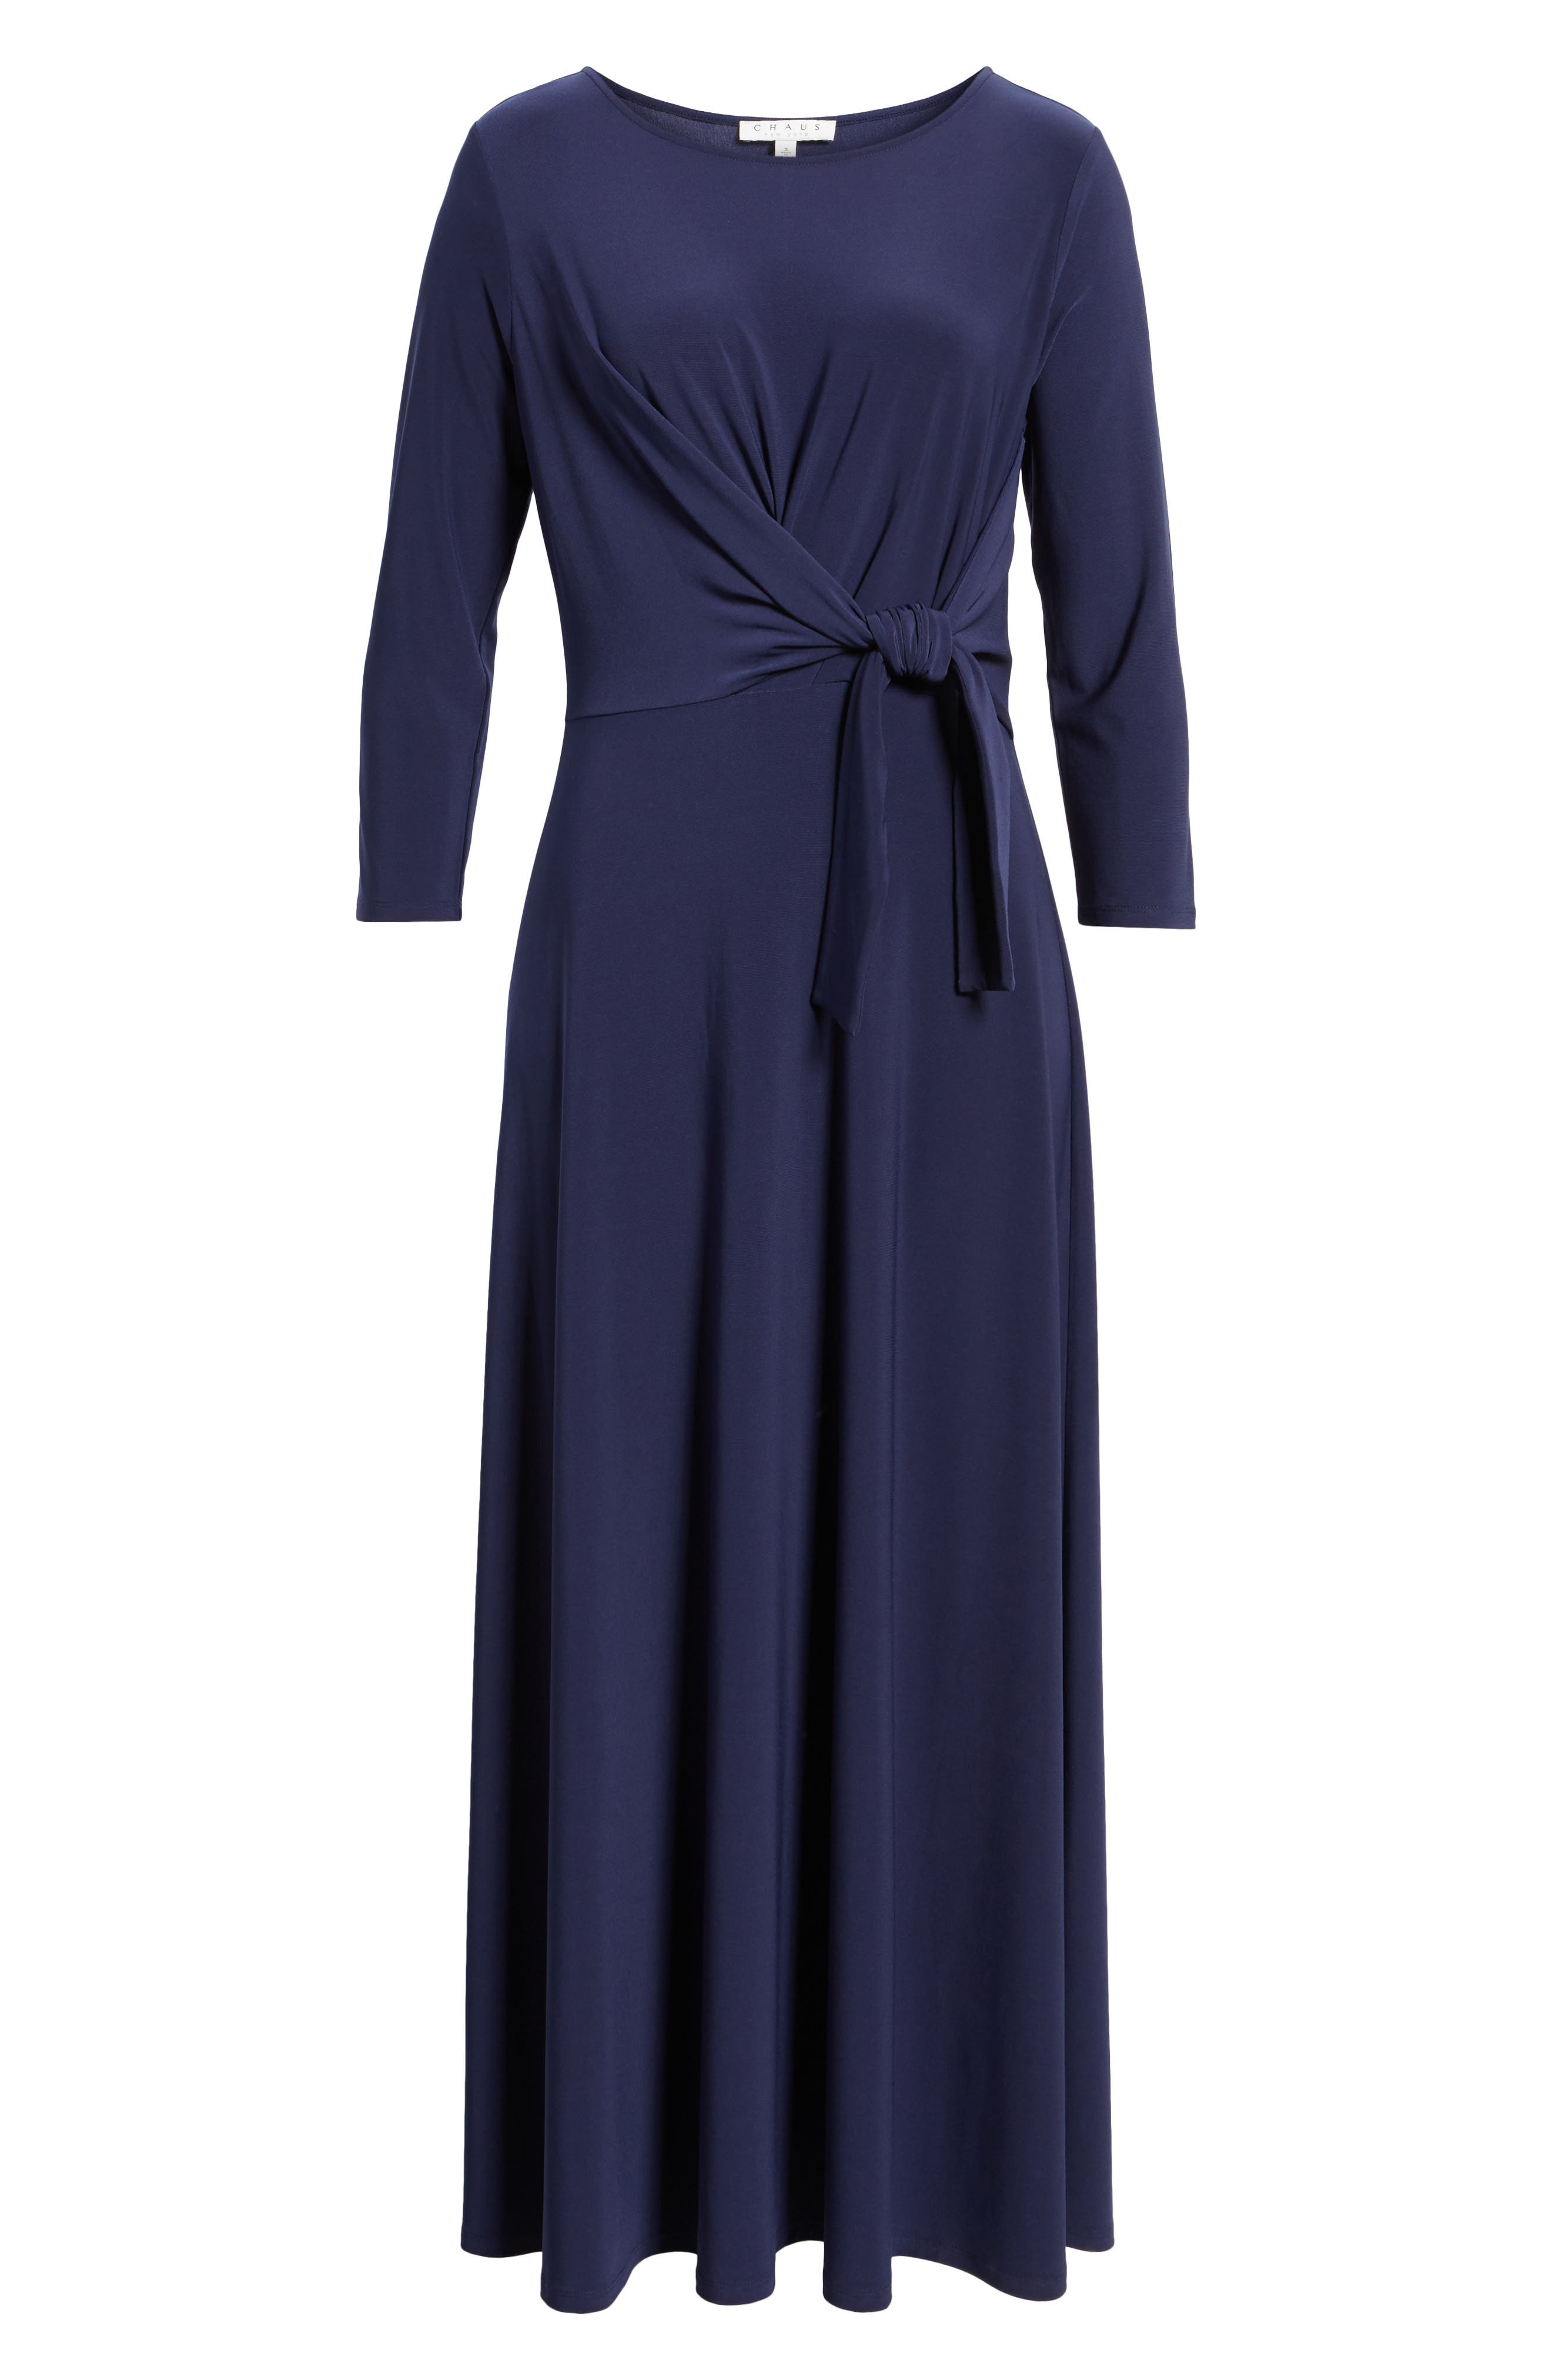 Cahus Faux Wrap Midi Dress,                             Alternate thumbnail 6, color,                             Evening Na